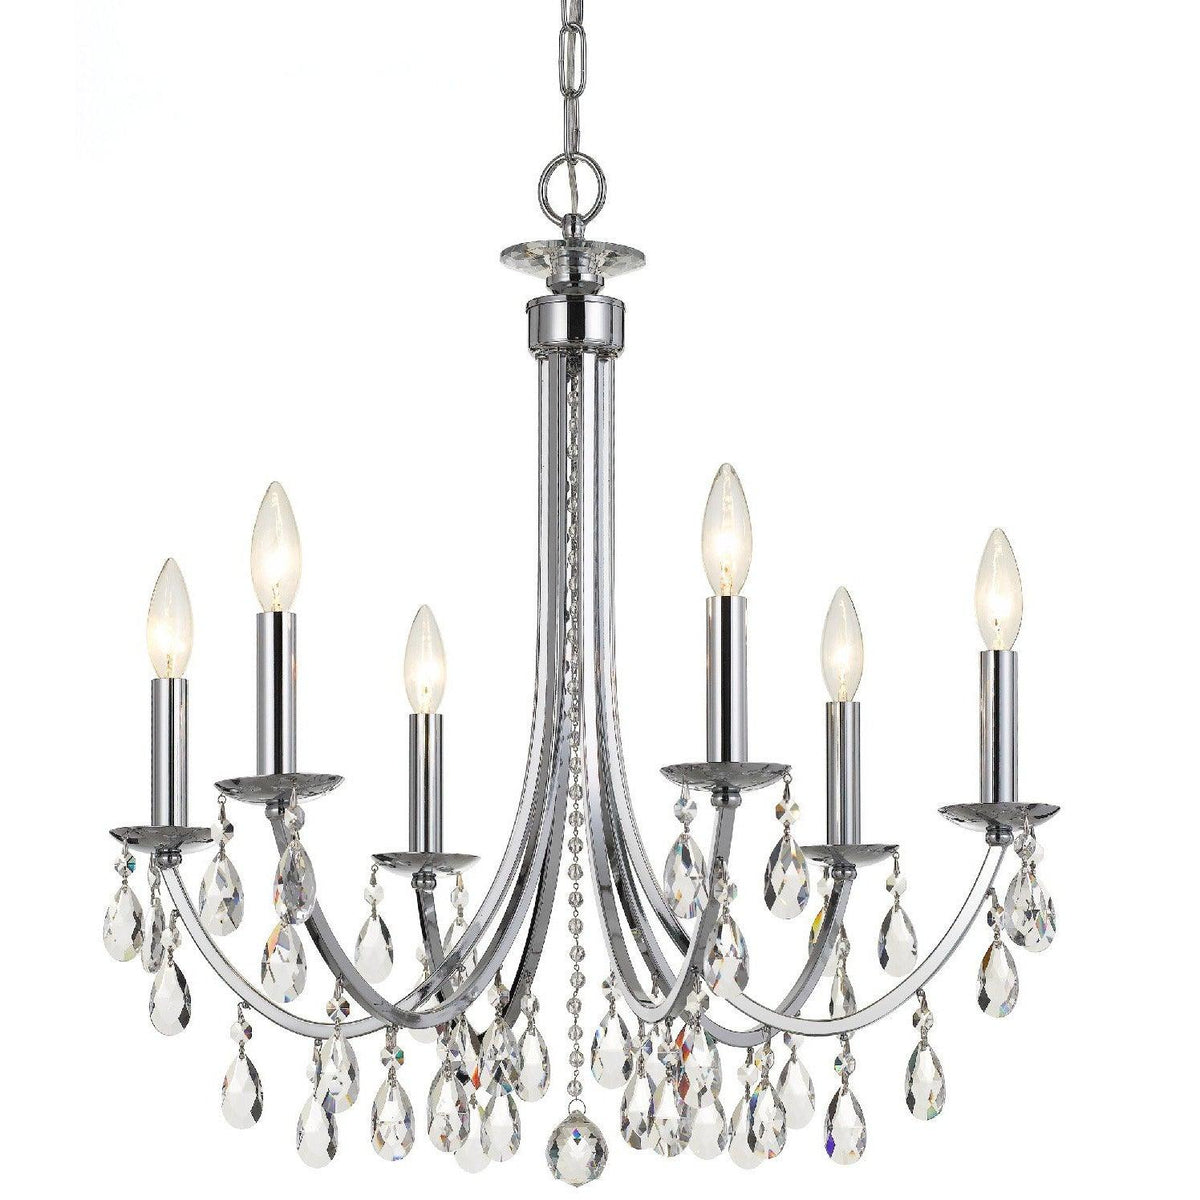 Crystorama - 8826-CH-CL-S - Six Light Chandelier - Bridgehampton - Polished Chrome